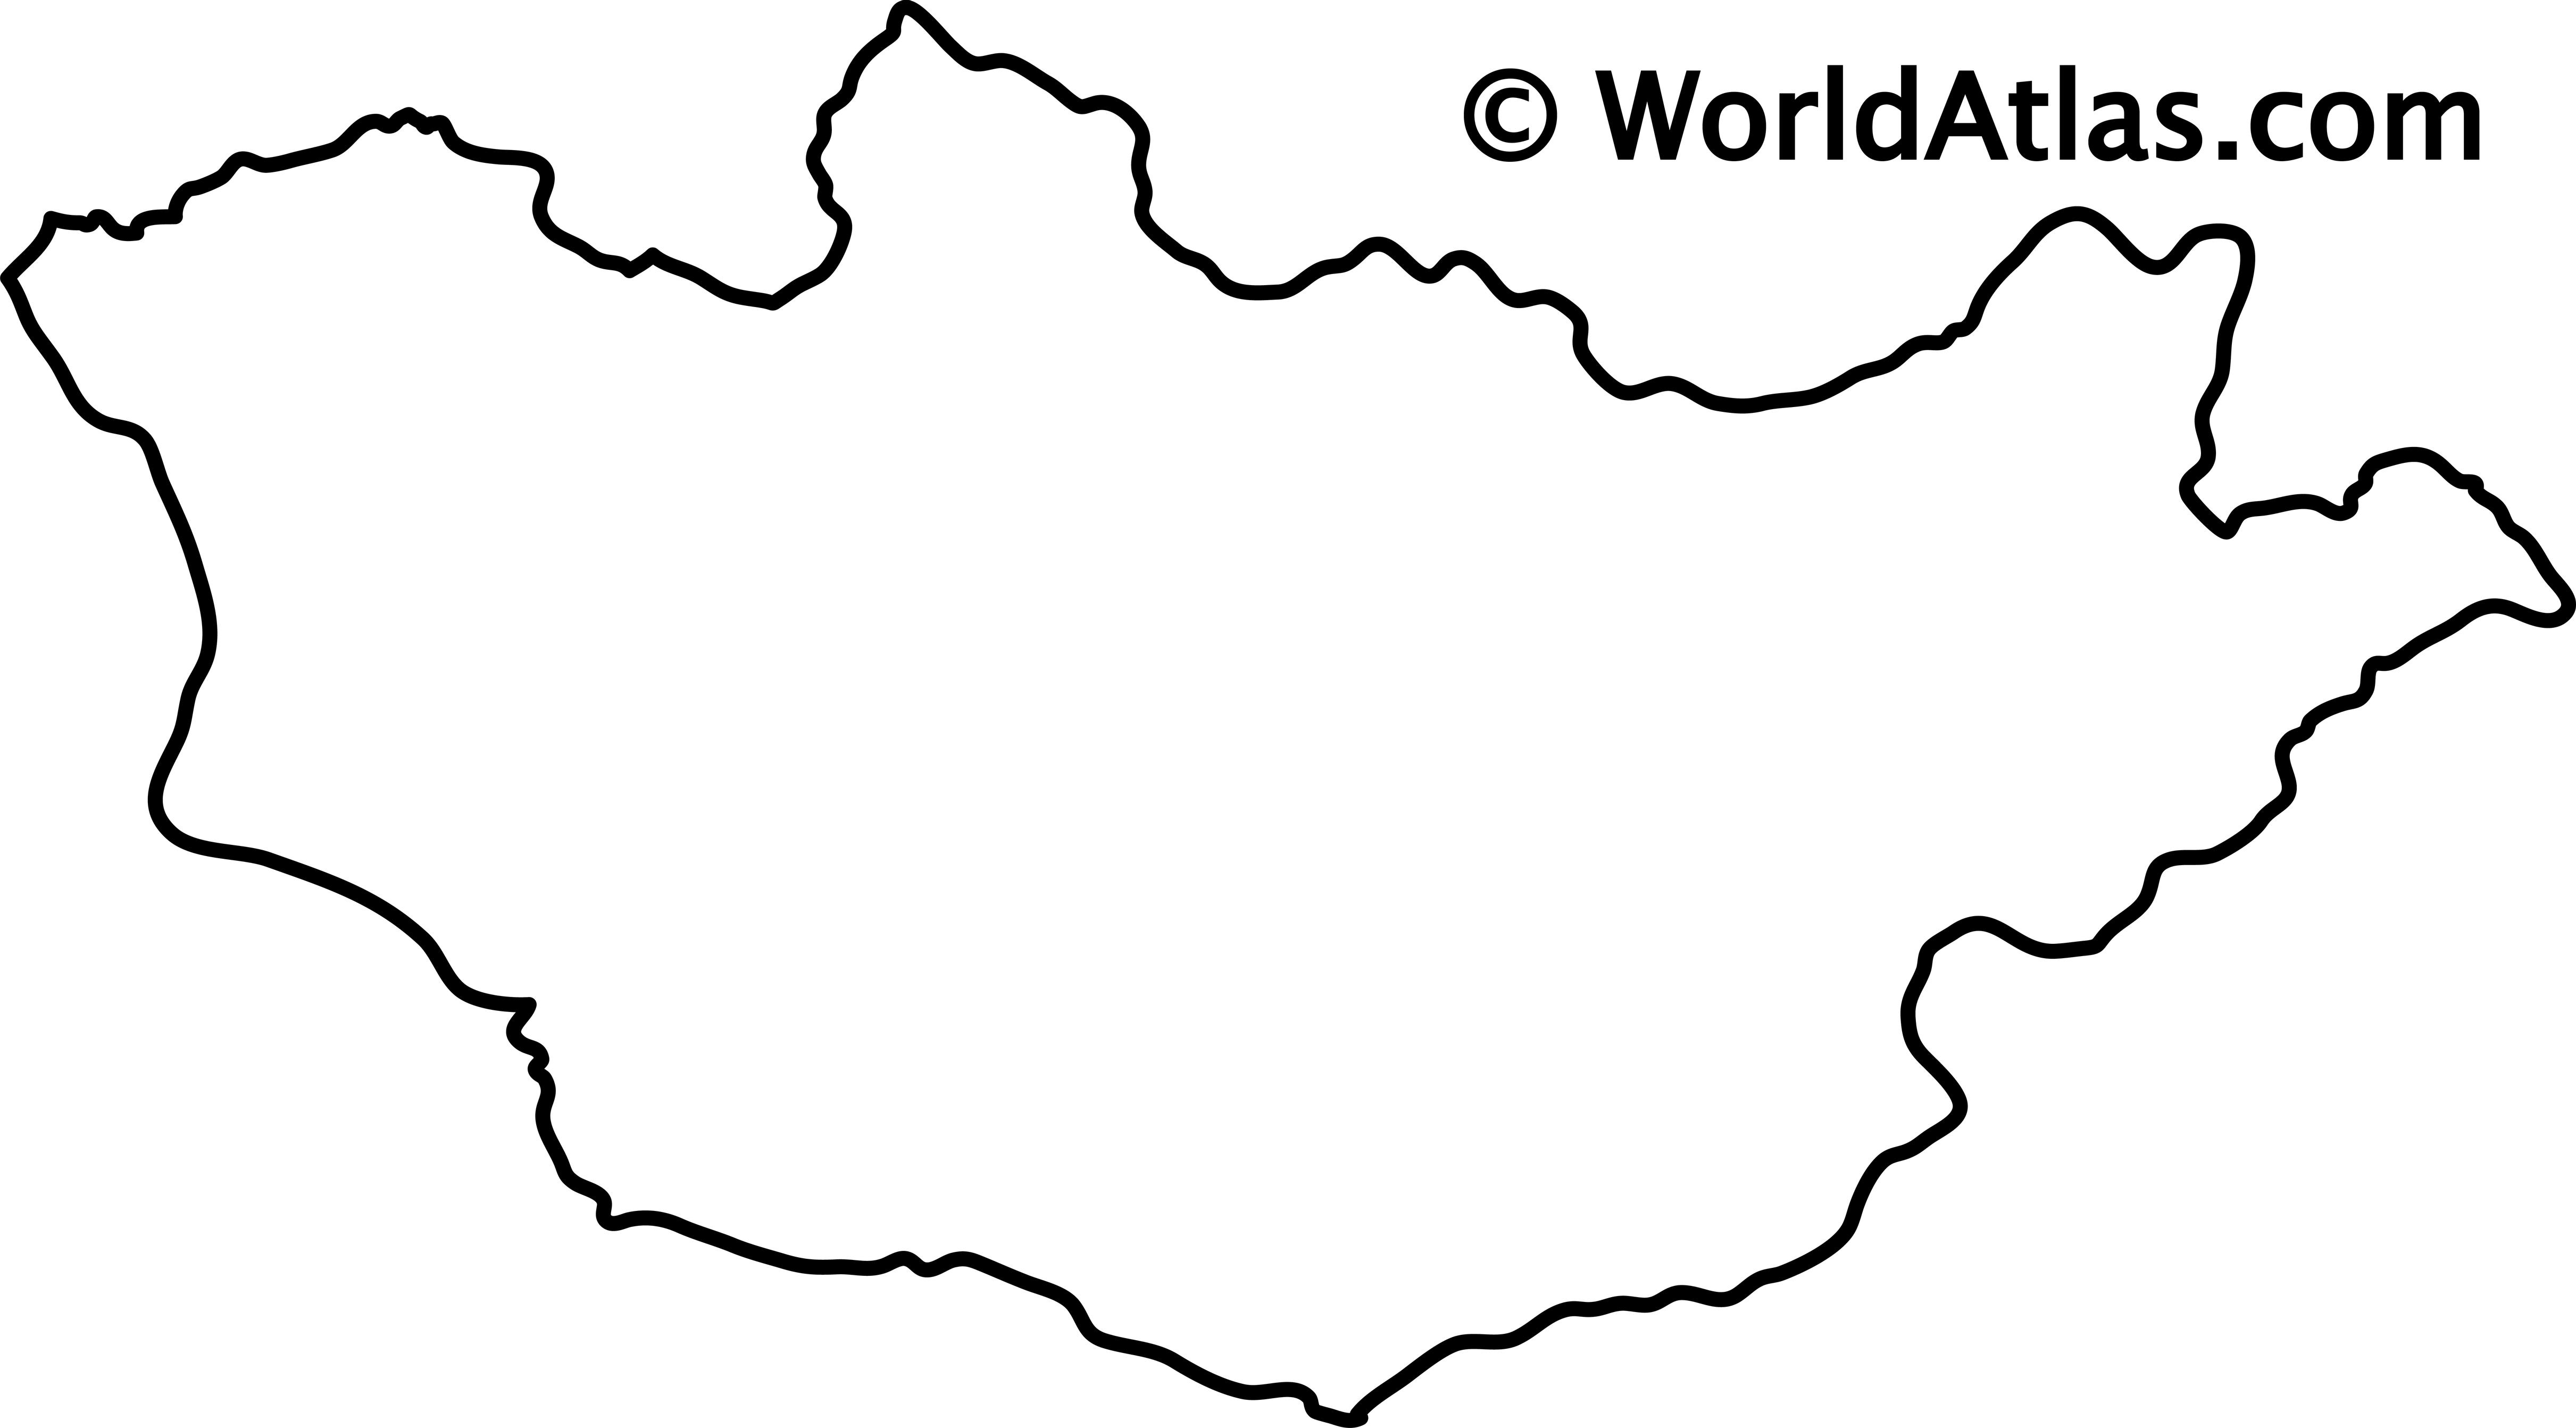 Blank Outline Map of Mongolia